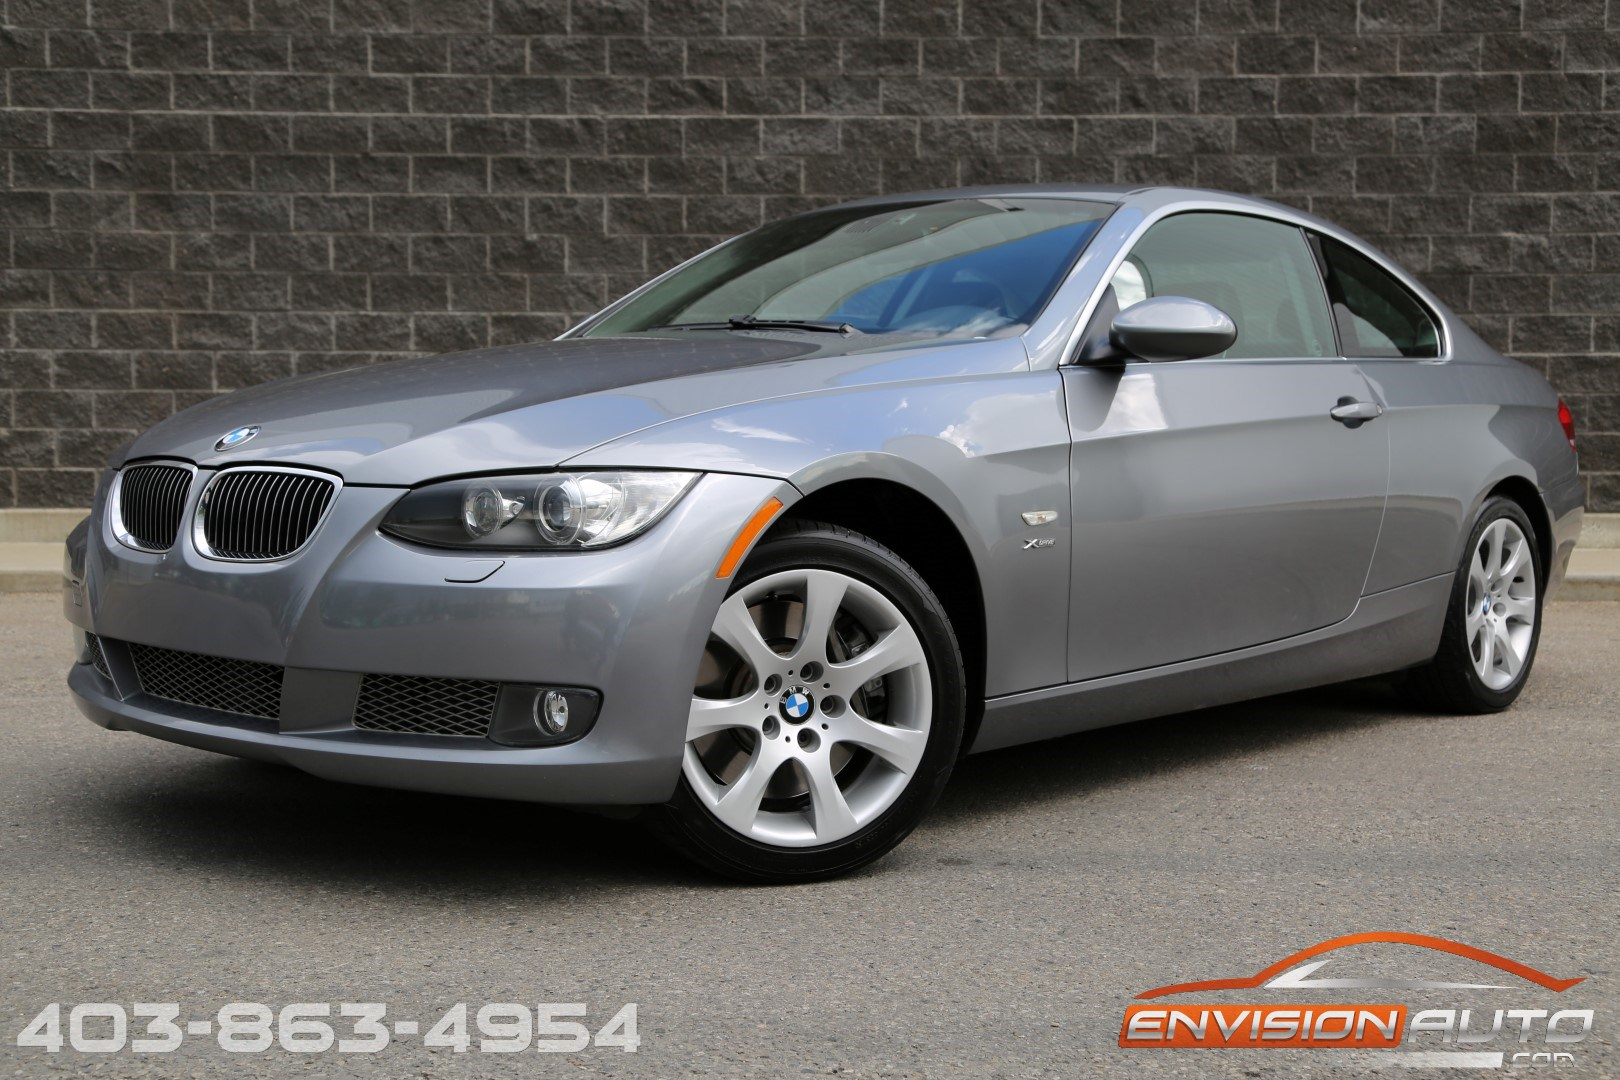 2009 bmw 335i xdrive coupe warranty service history envision auto. Black Bedroom Furniture Sets. Home Design Ideas